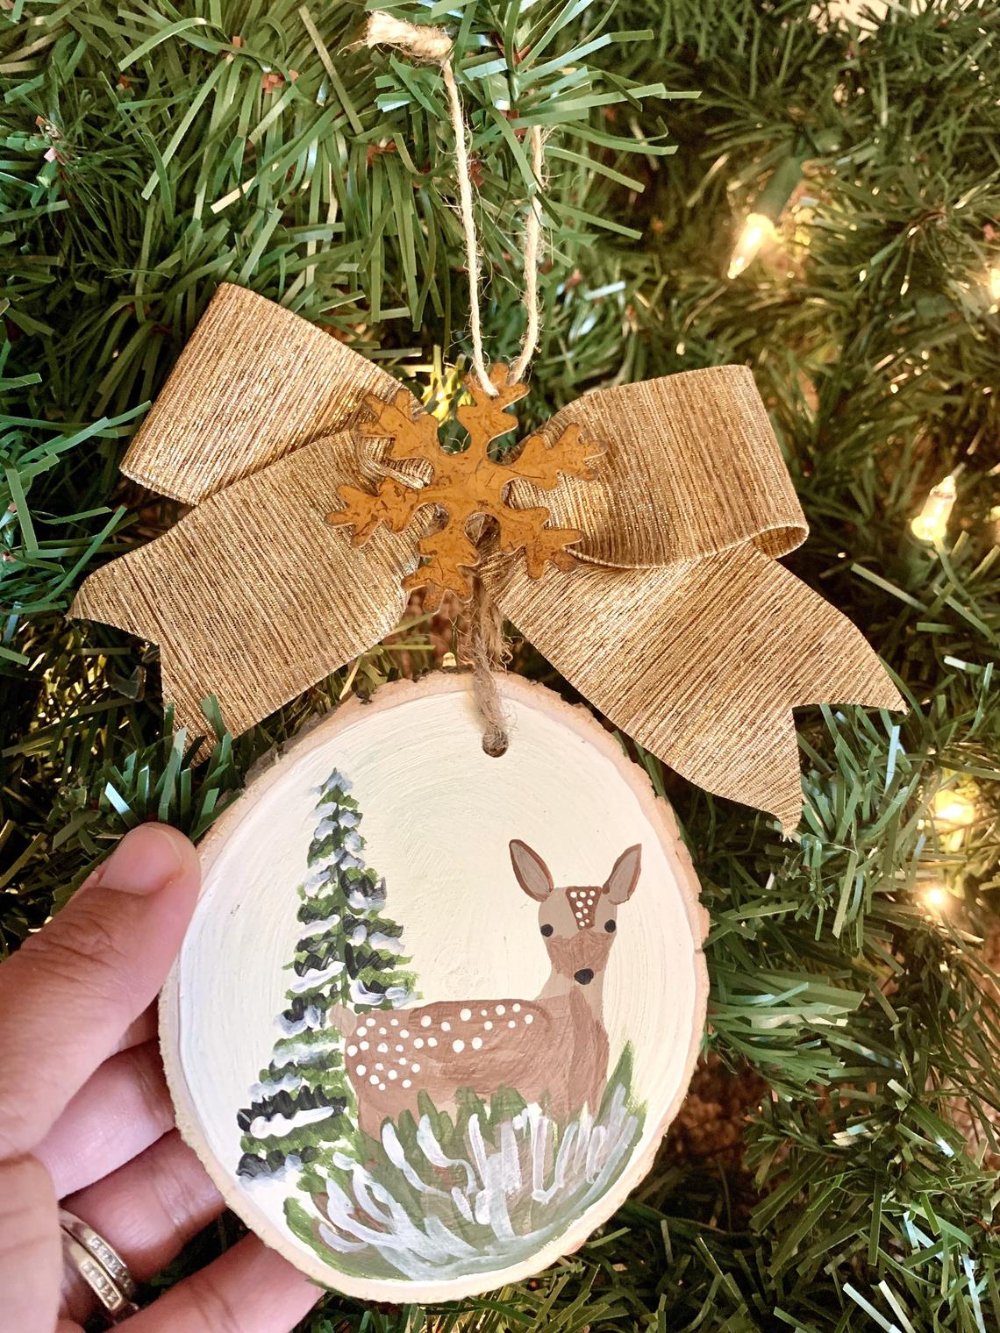 Christmas Ornaments Wood Slice Ornament Hand Painted Etsy Wood Slice Ornament Christmas Ornaments Wood Christmas Ornaments